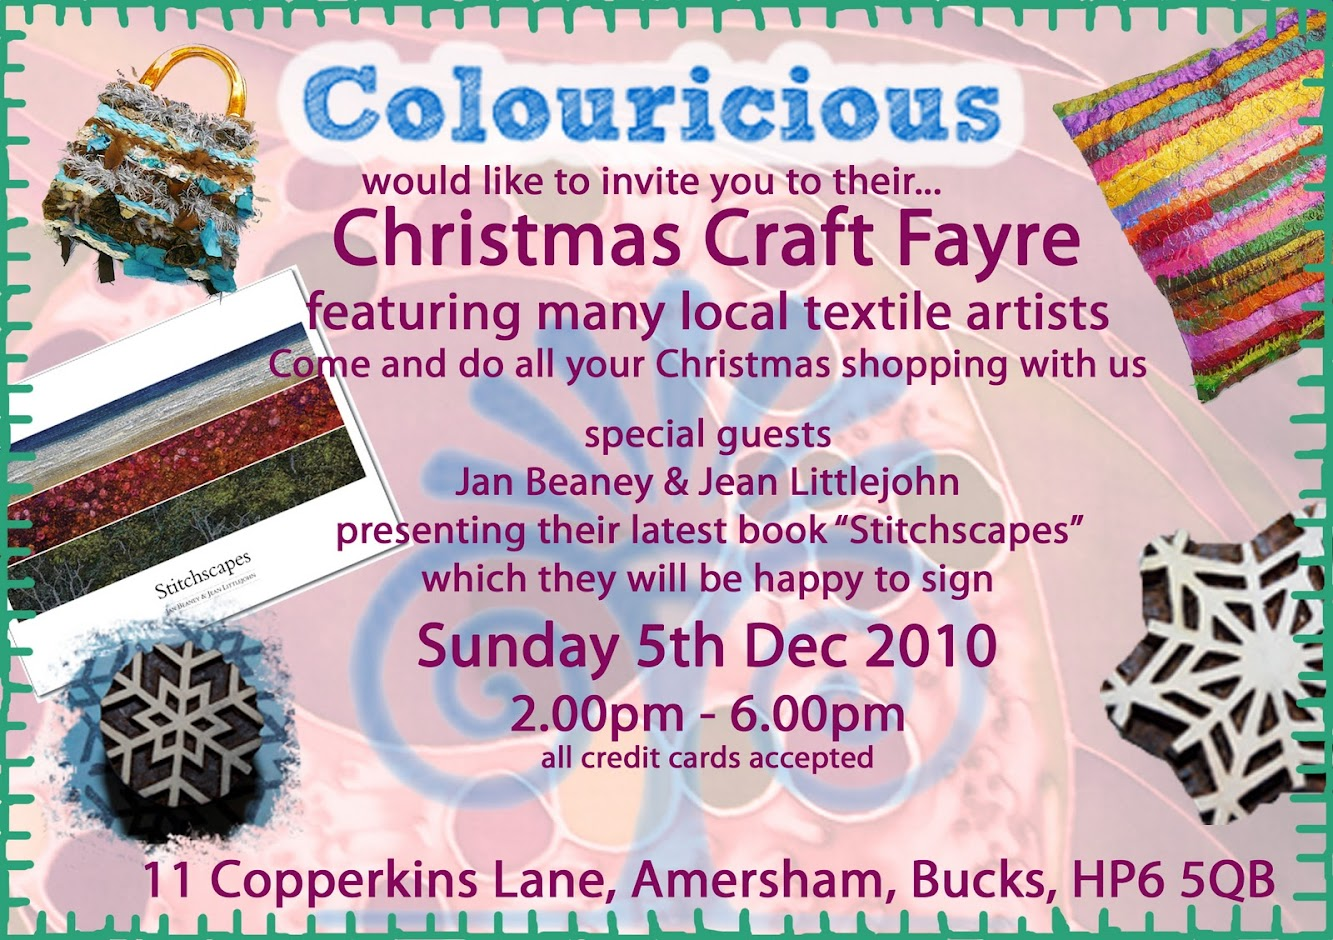 Come Celebrate Christmas with Colouricious!